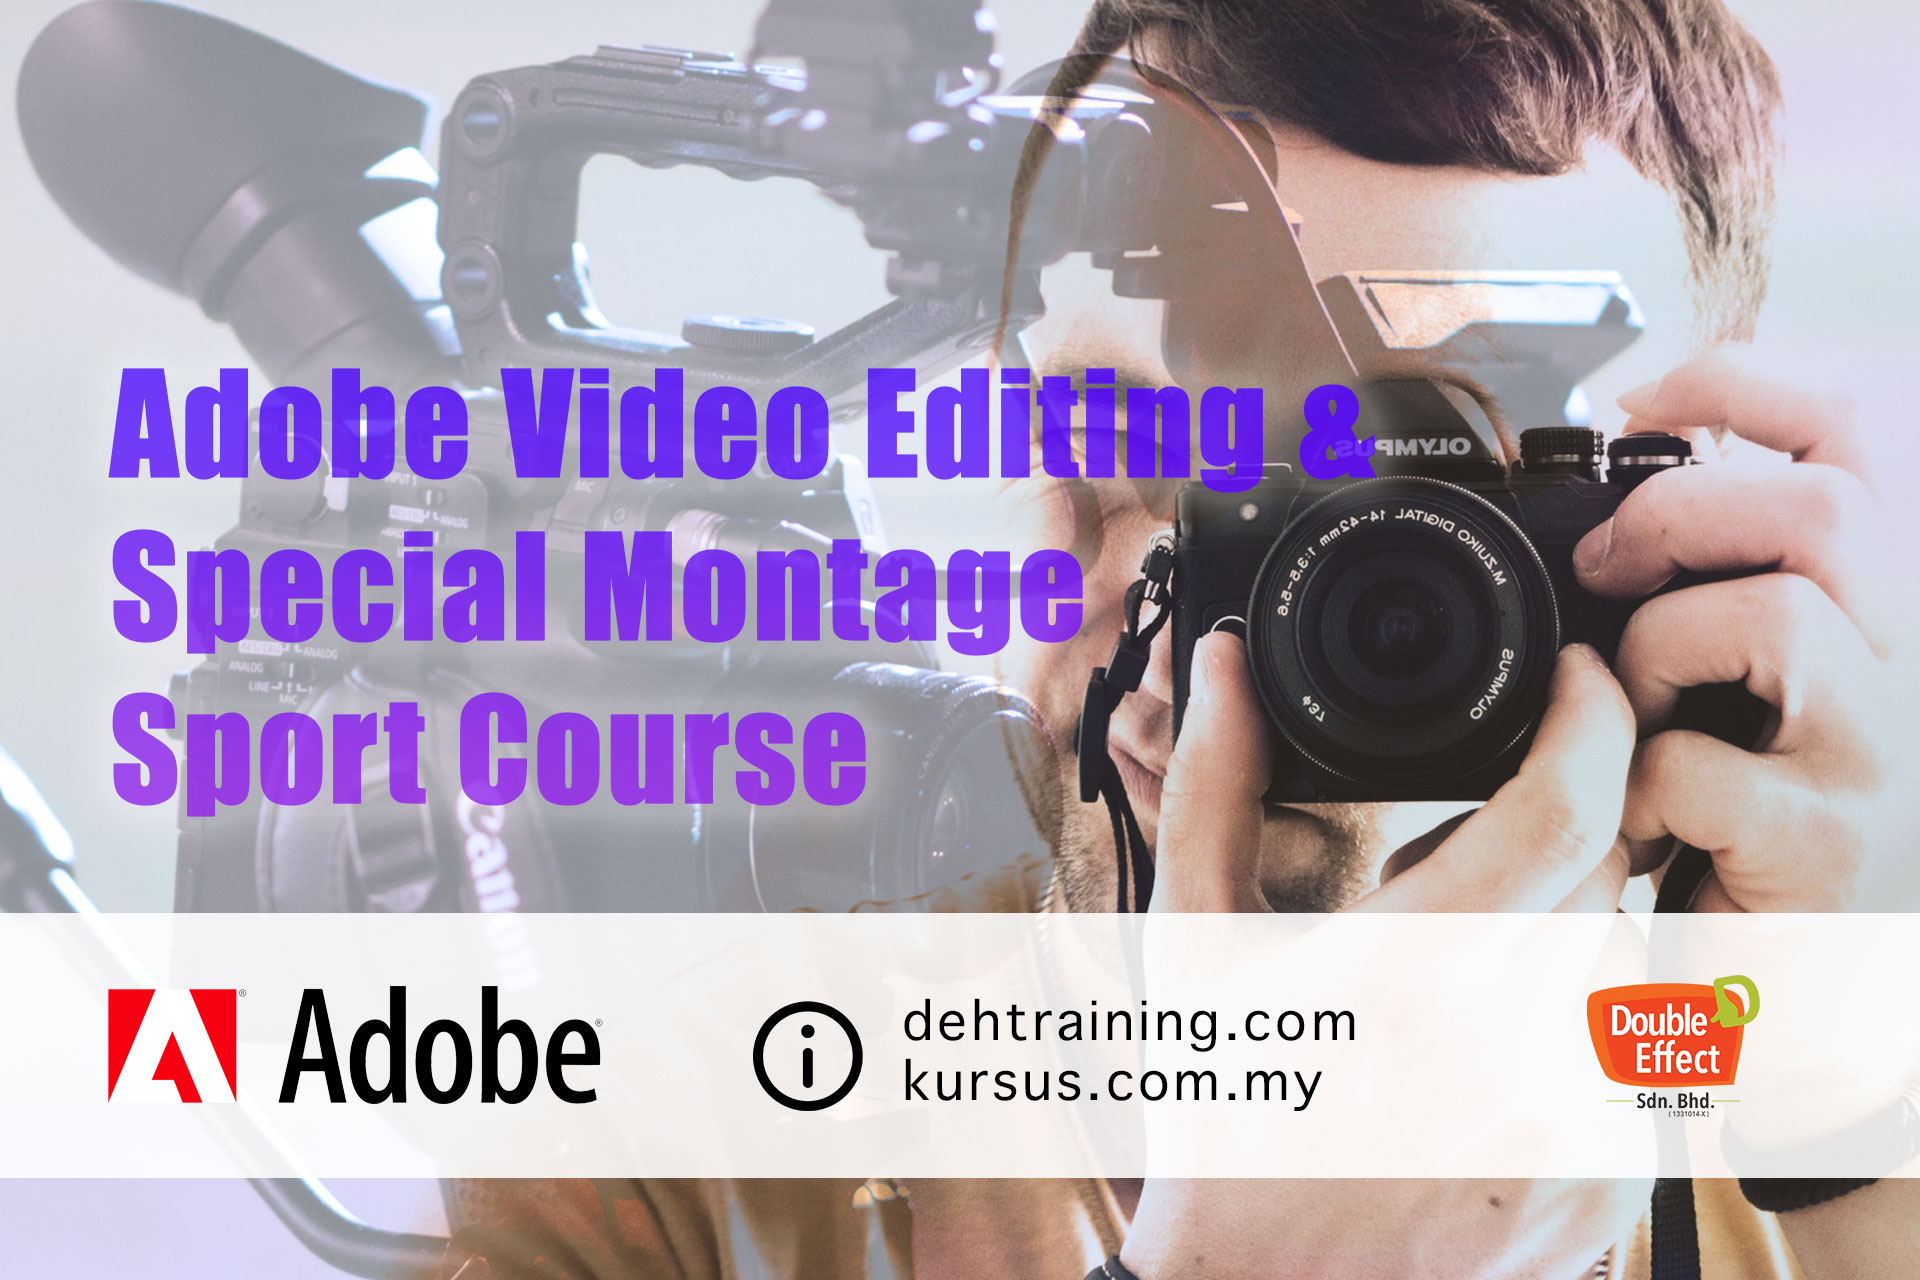 Adobe-Video-Editing-and-Special-Montage-Short-Course